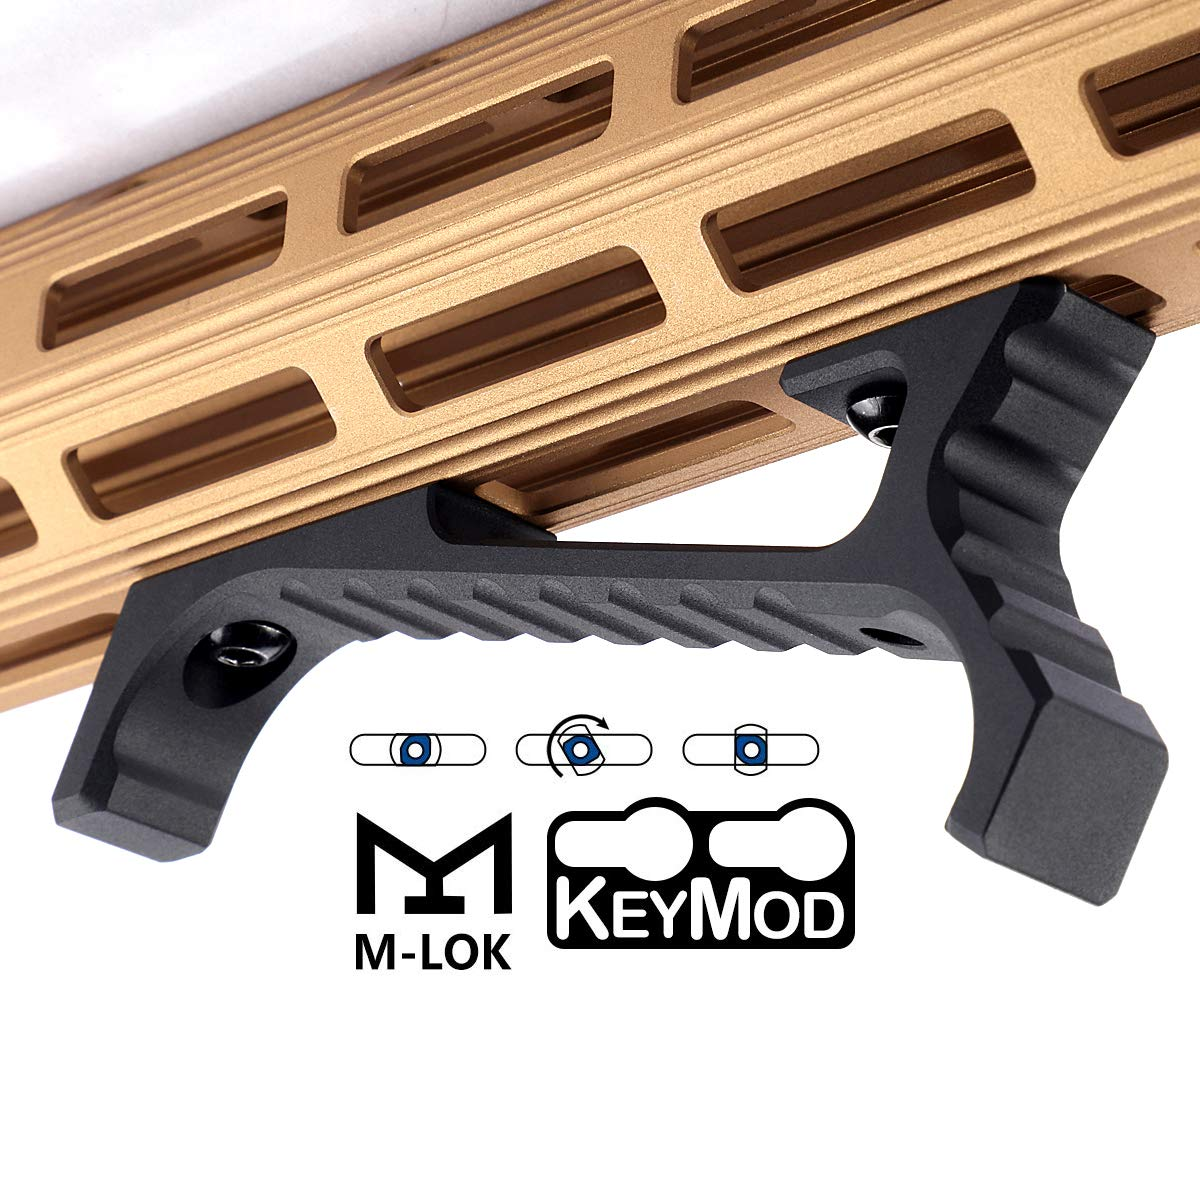 SmallDen Aluminum M-LOK KEYMOD Accessories for Mlok Picatinny Rail,fit Keymod Rail Sections(Black) by SmallDen